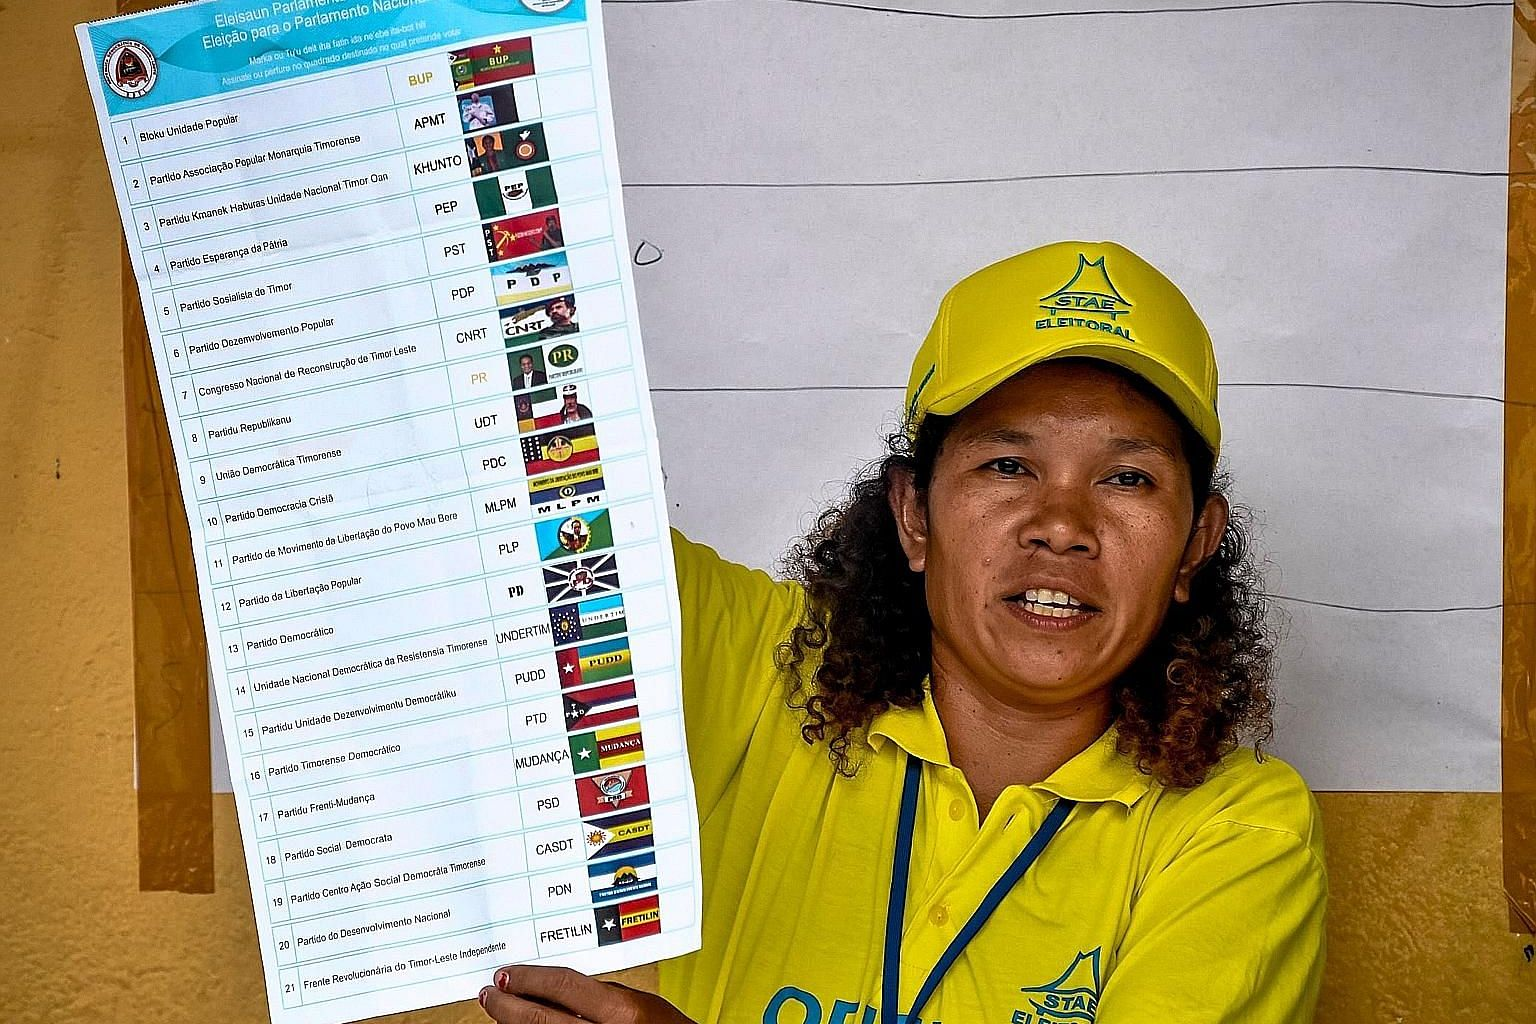 An election official showing a ballot paper in Dili yesterday, as counting begins for the parliamentary elections in Timor Leste.